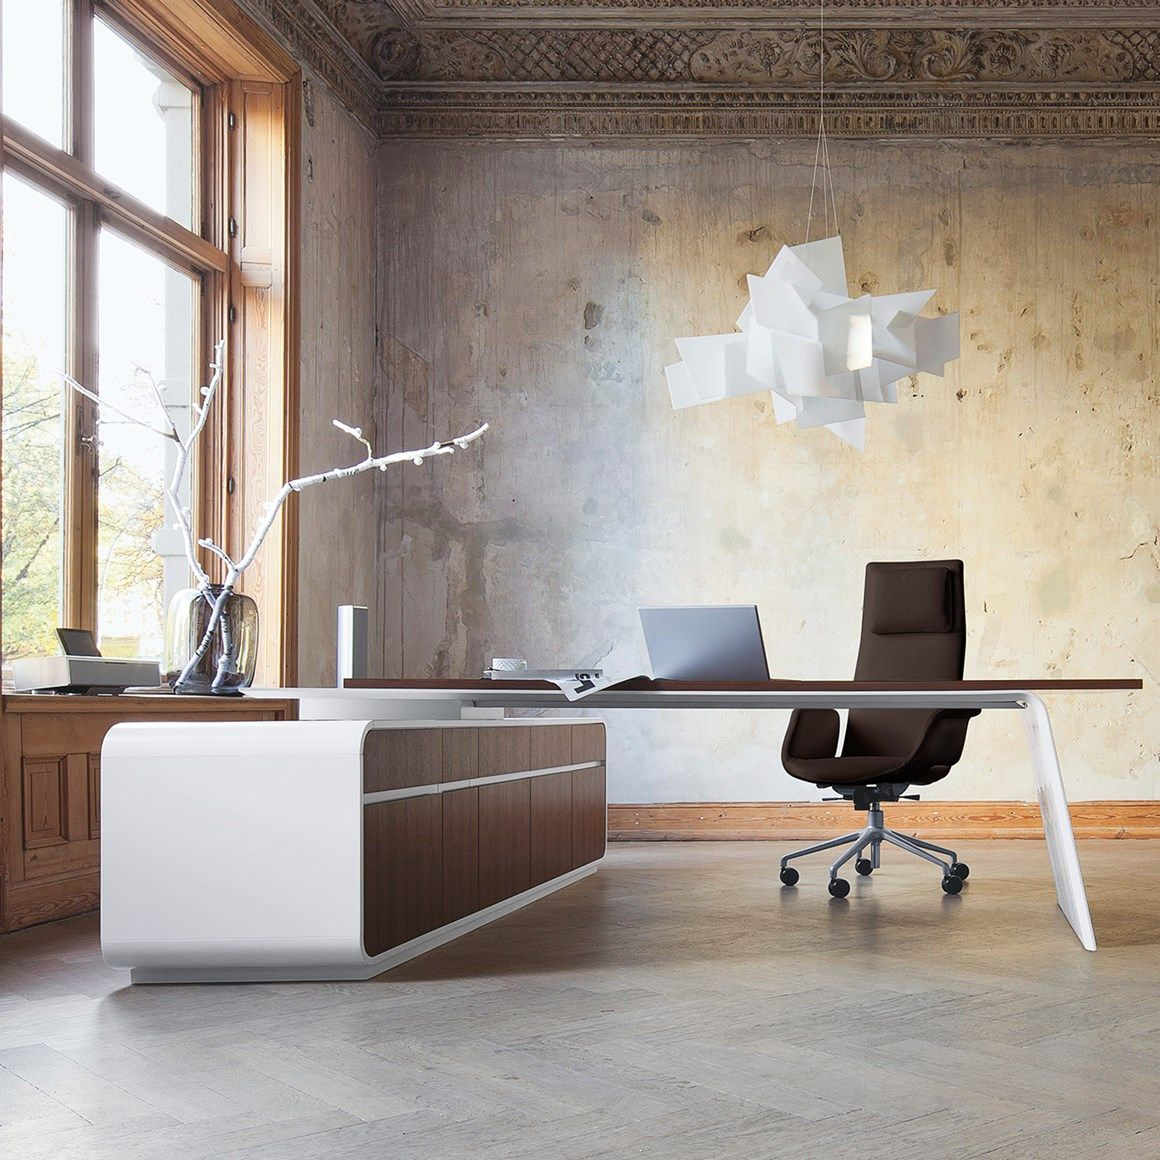 Senor is an exclusive and representative executive furniture range from MartinStoll consisting of desks, meeting tables and storage units.